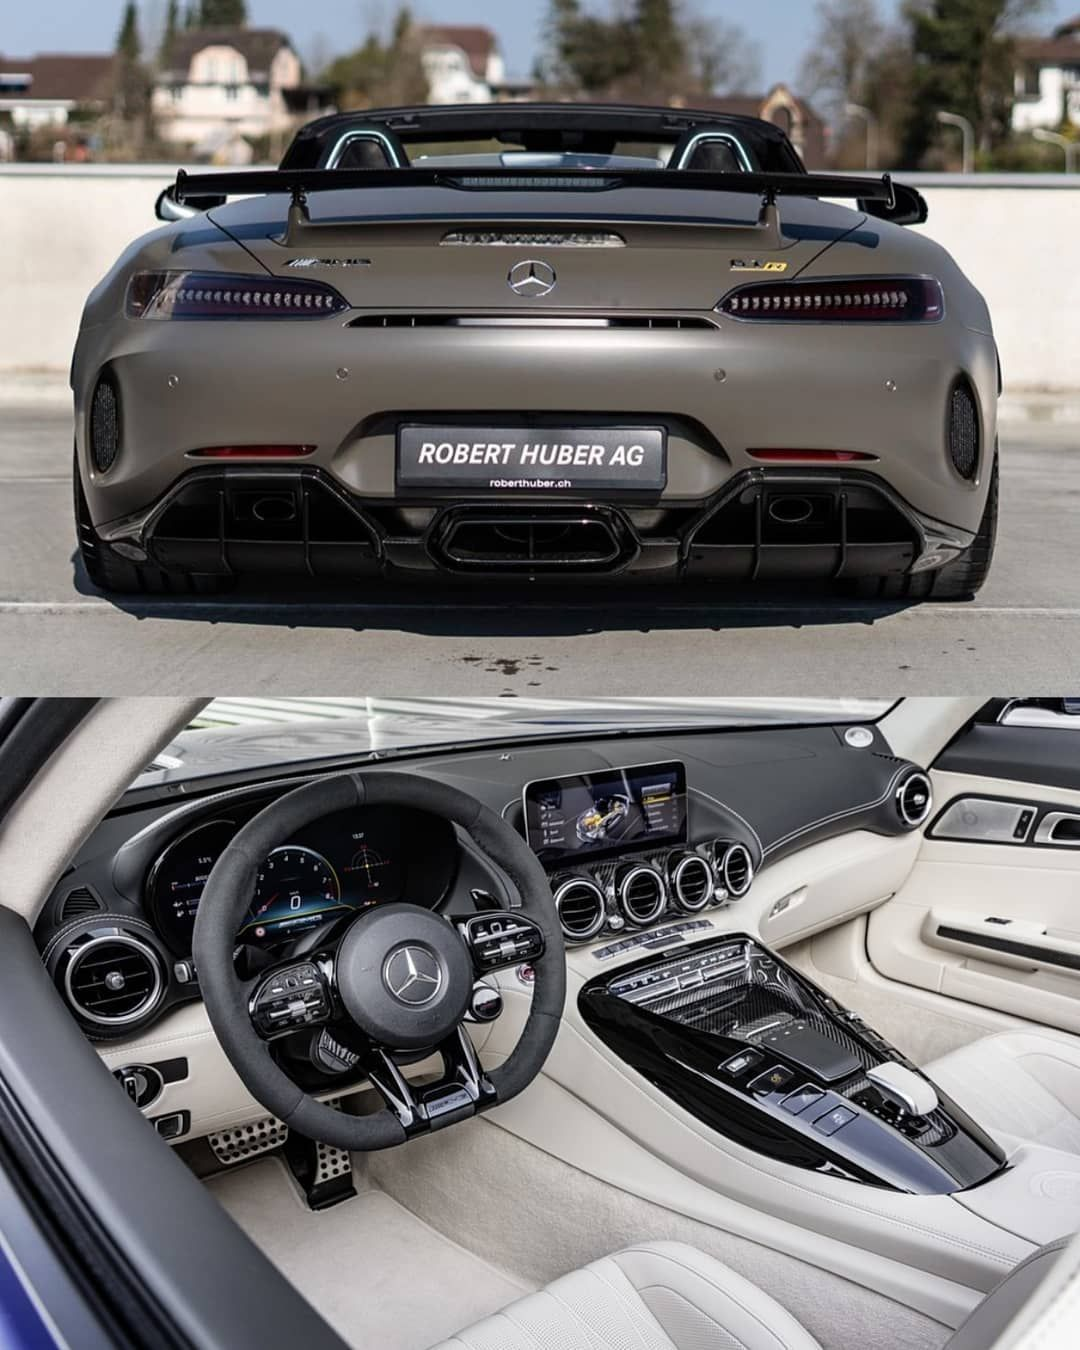 Pin by Nathankeel on Cars in 2020 Benz, Amg, Mercedes